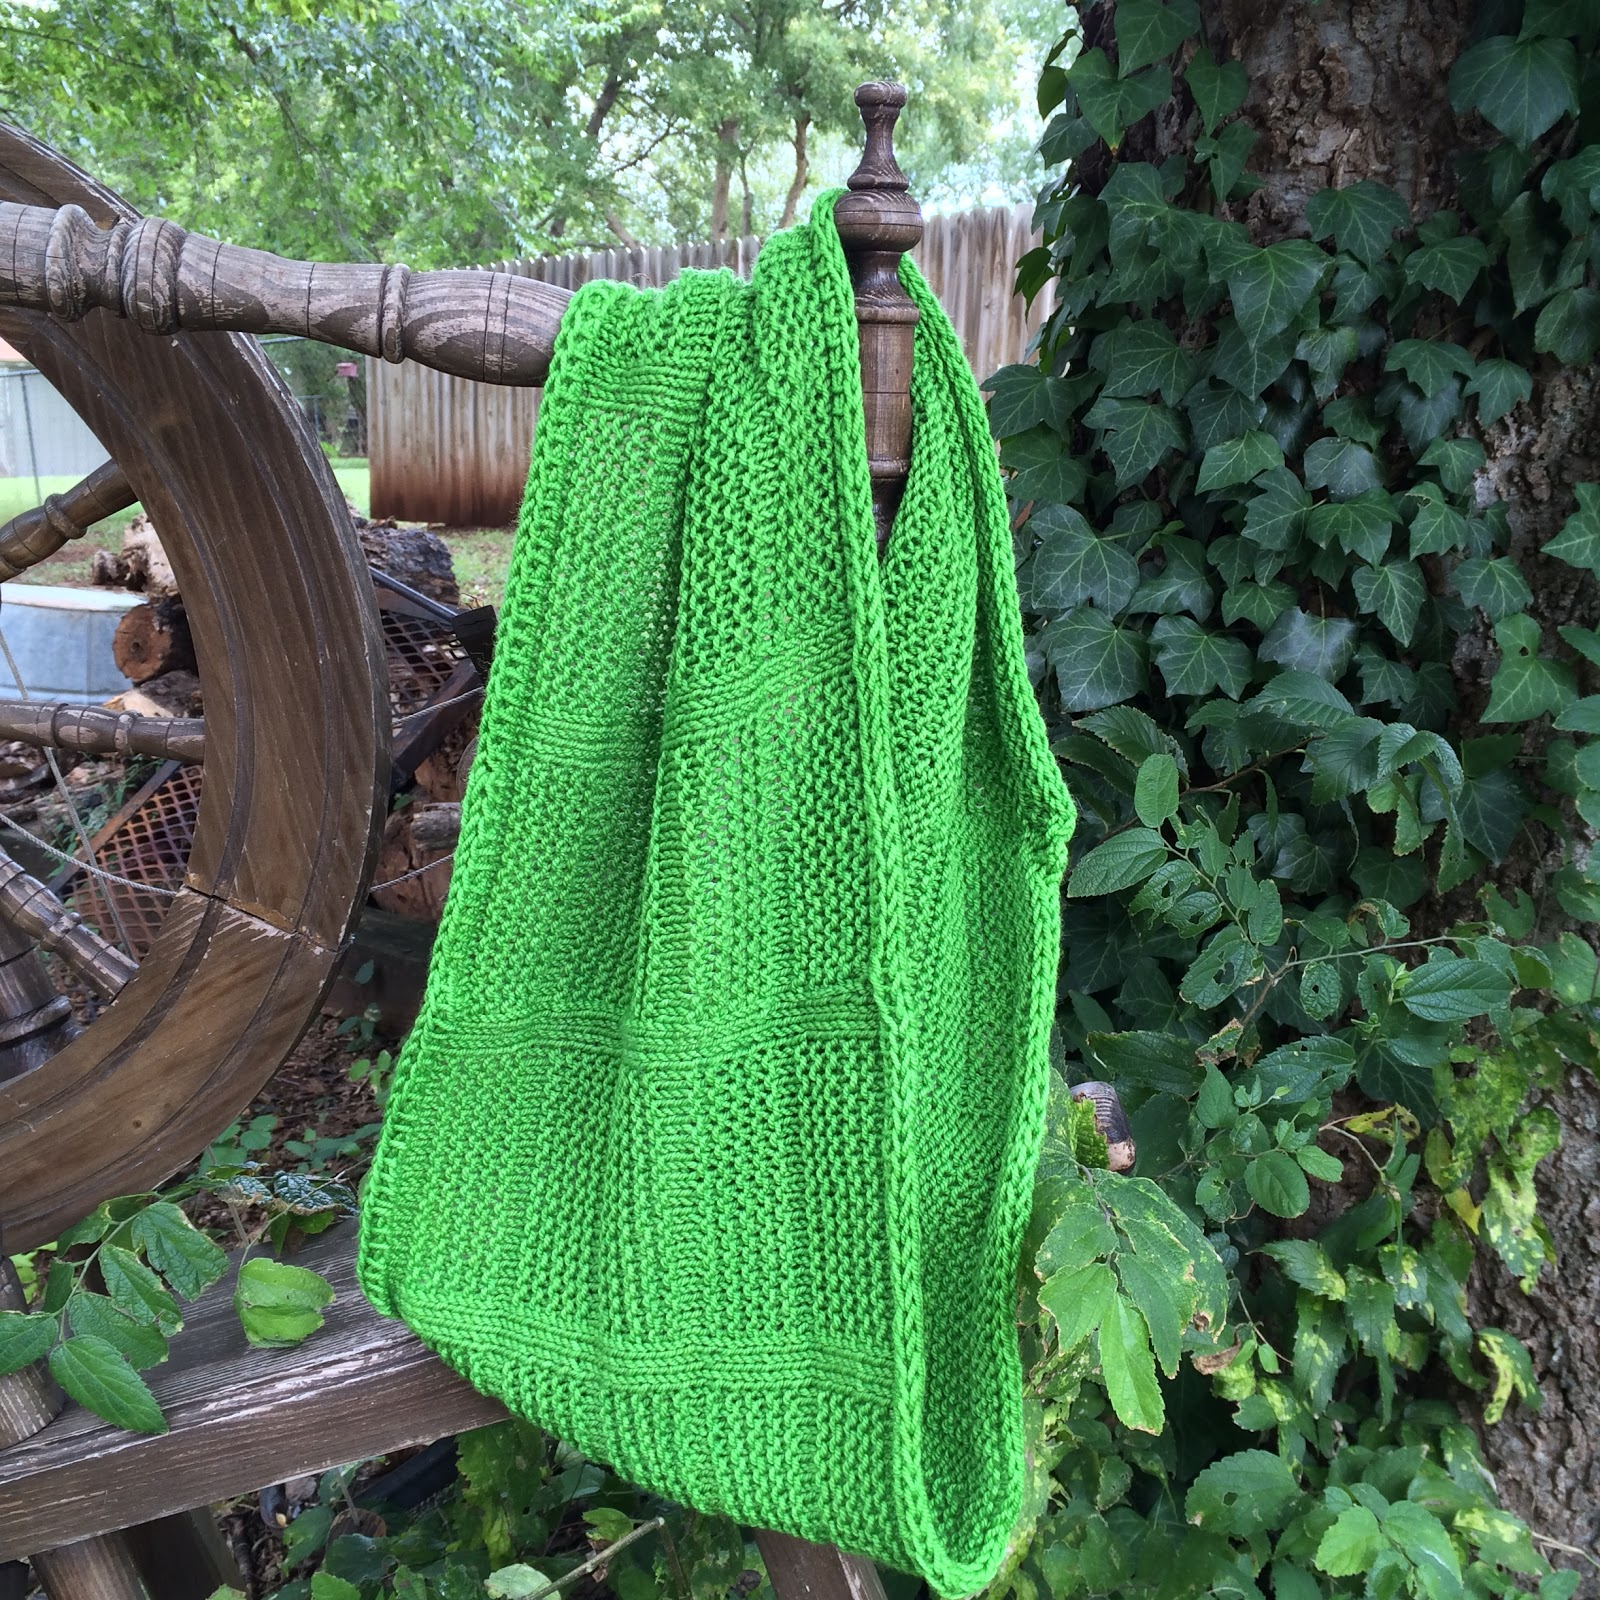 Knitting cowl pattern that is free with email subscription from Banana Moon Studio